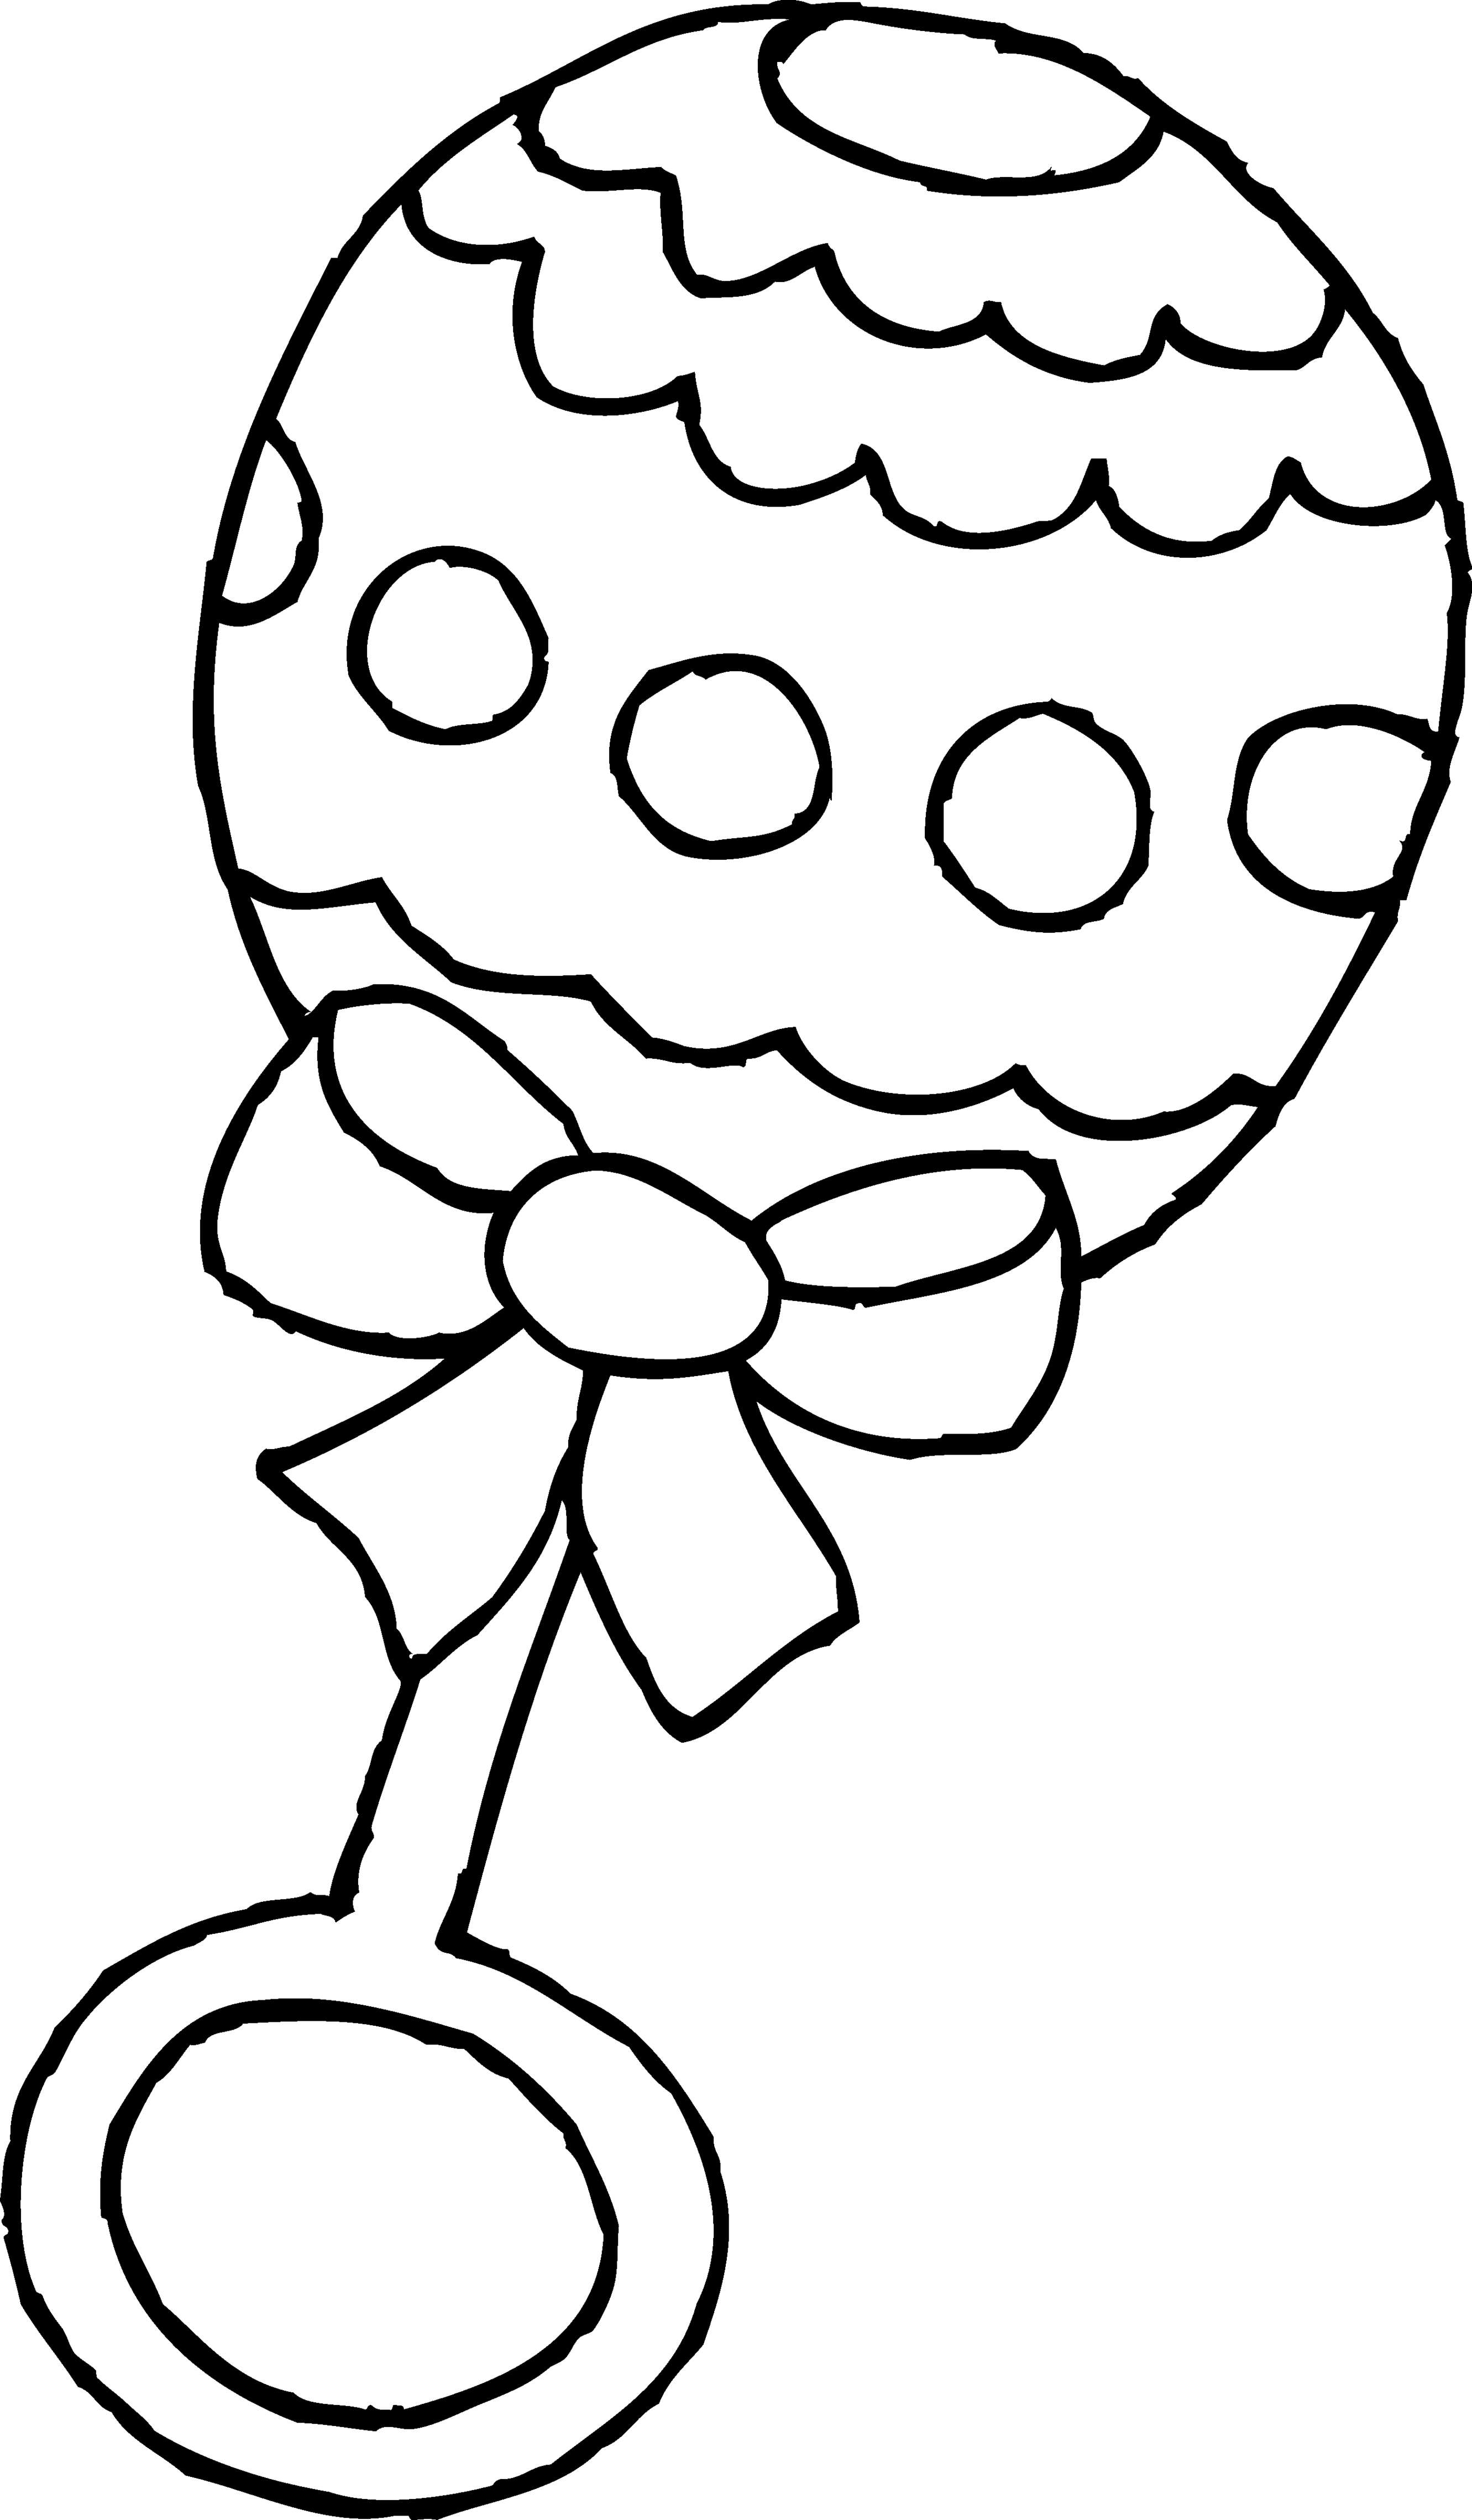 Baby rattle baby clipart black and white free to use clip art.